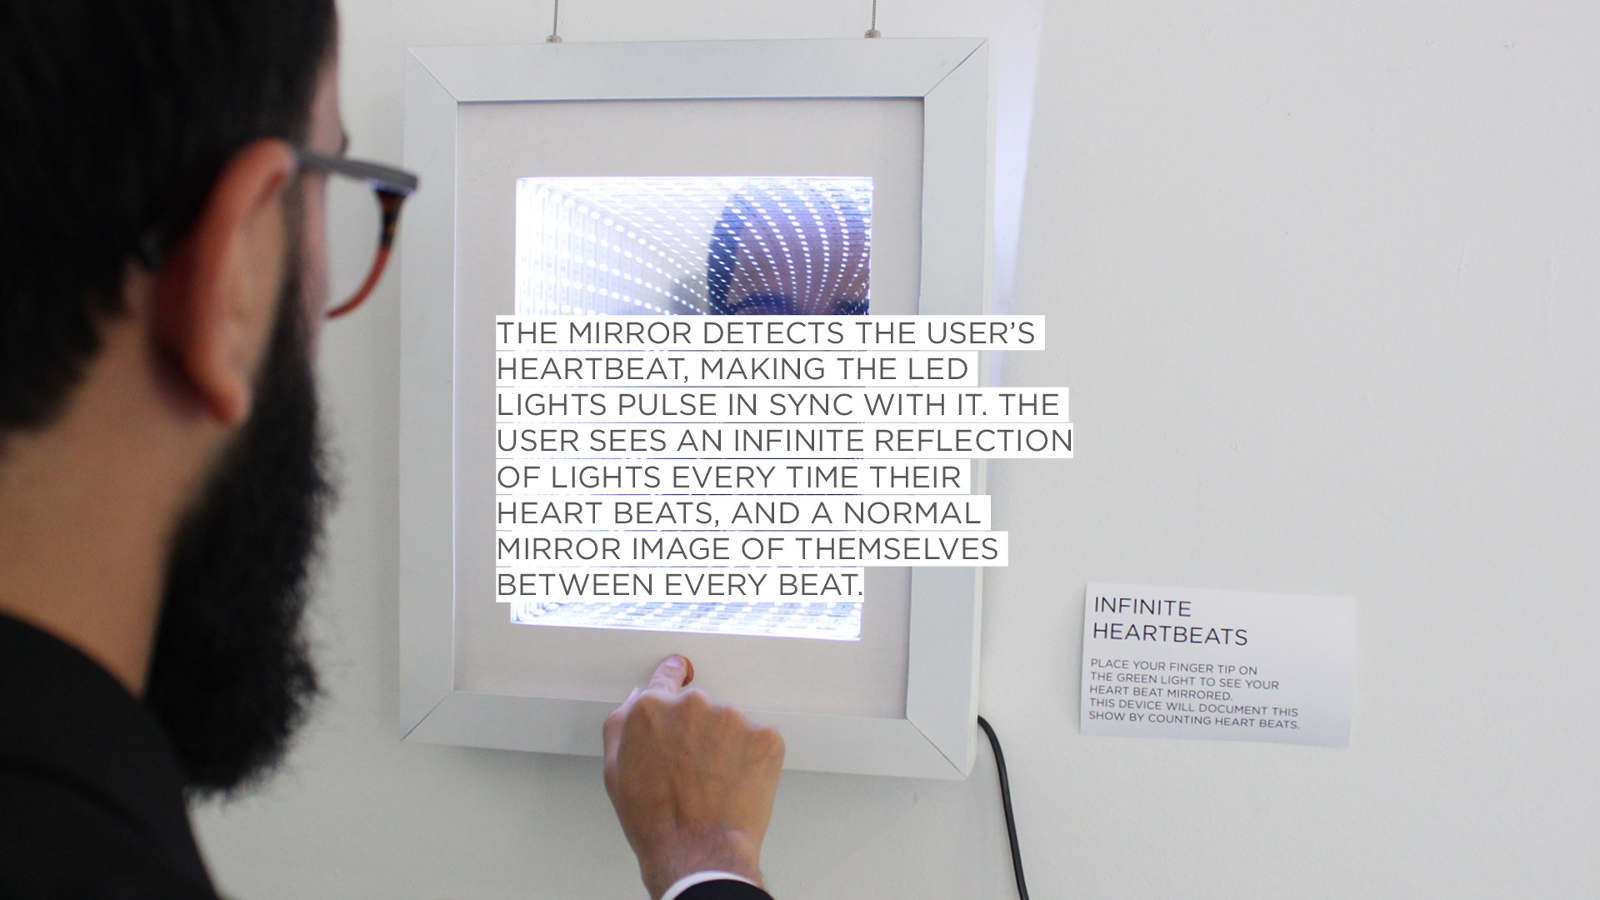 Perceptive Objects: Technology that Understands Us